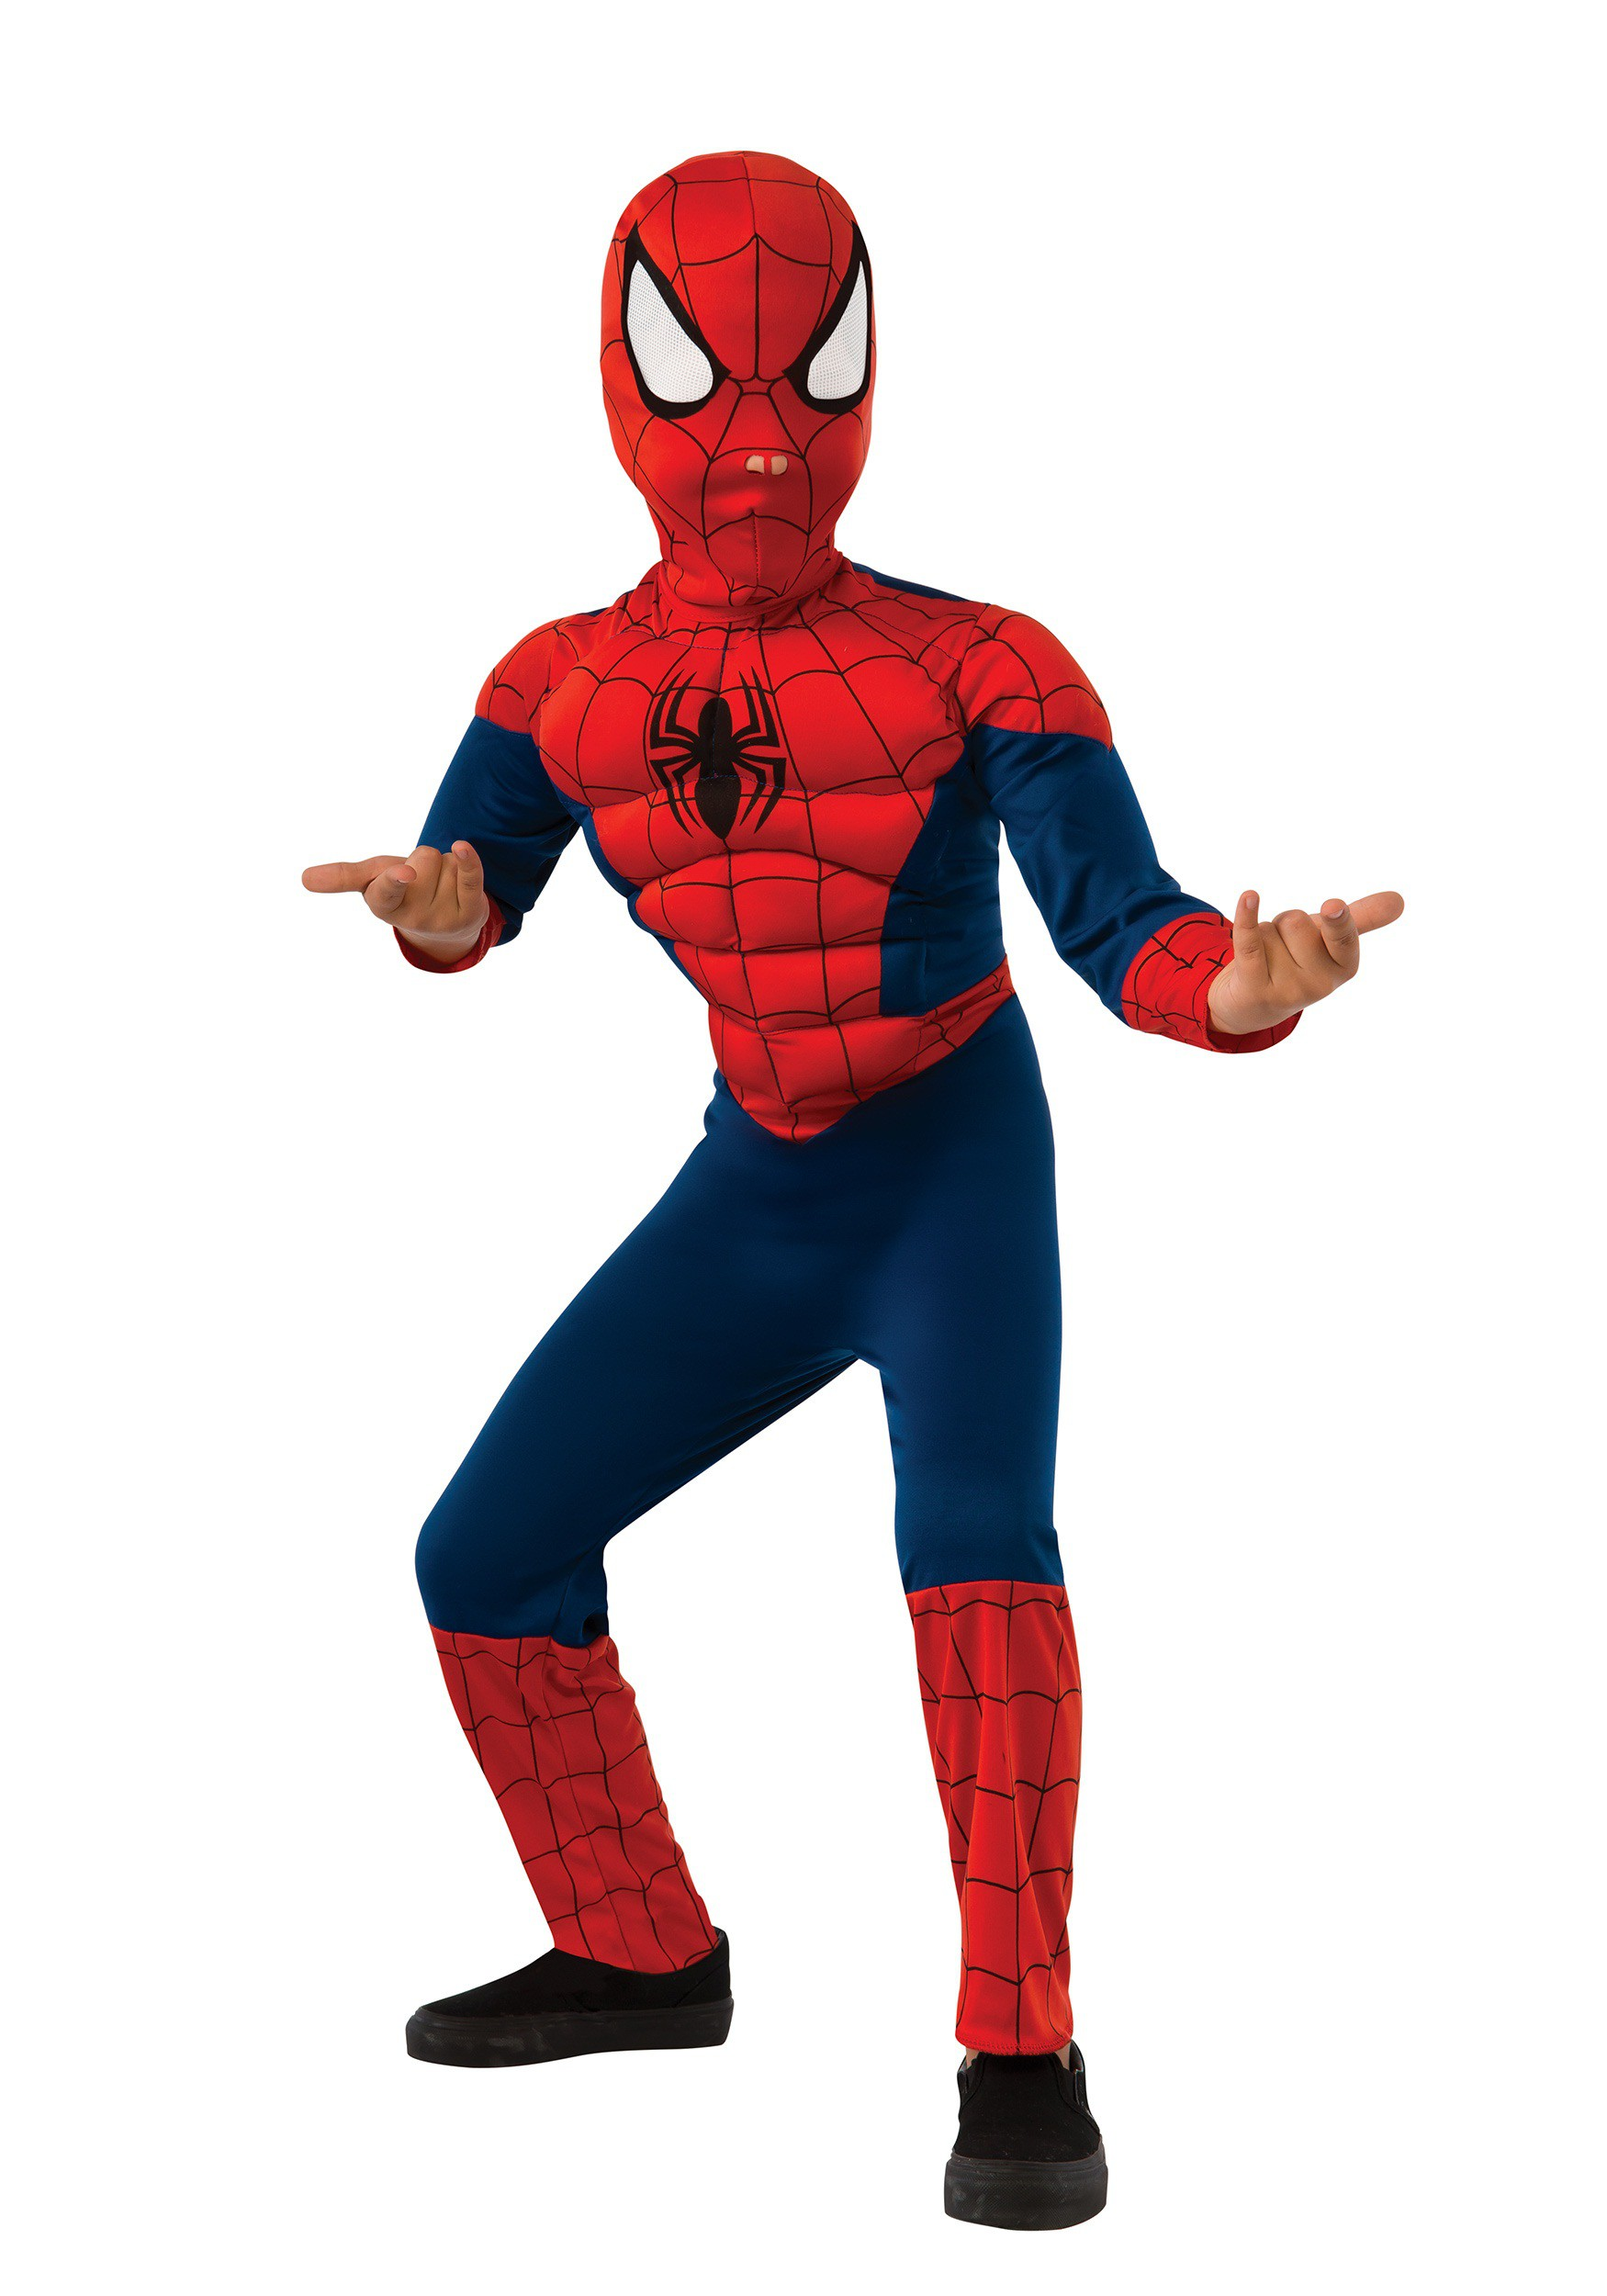 Boy's Spider-Man Muscle Costume RU620010